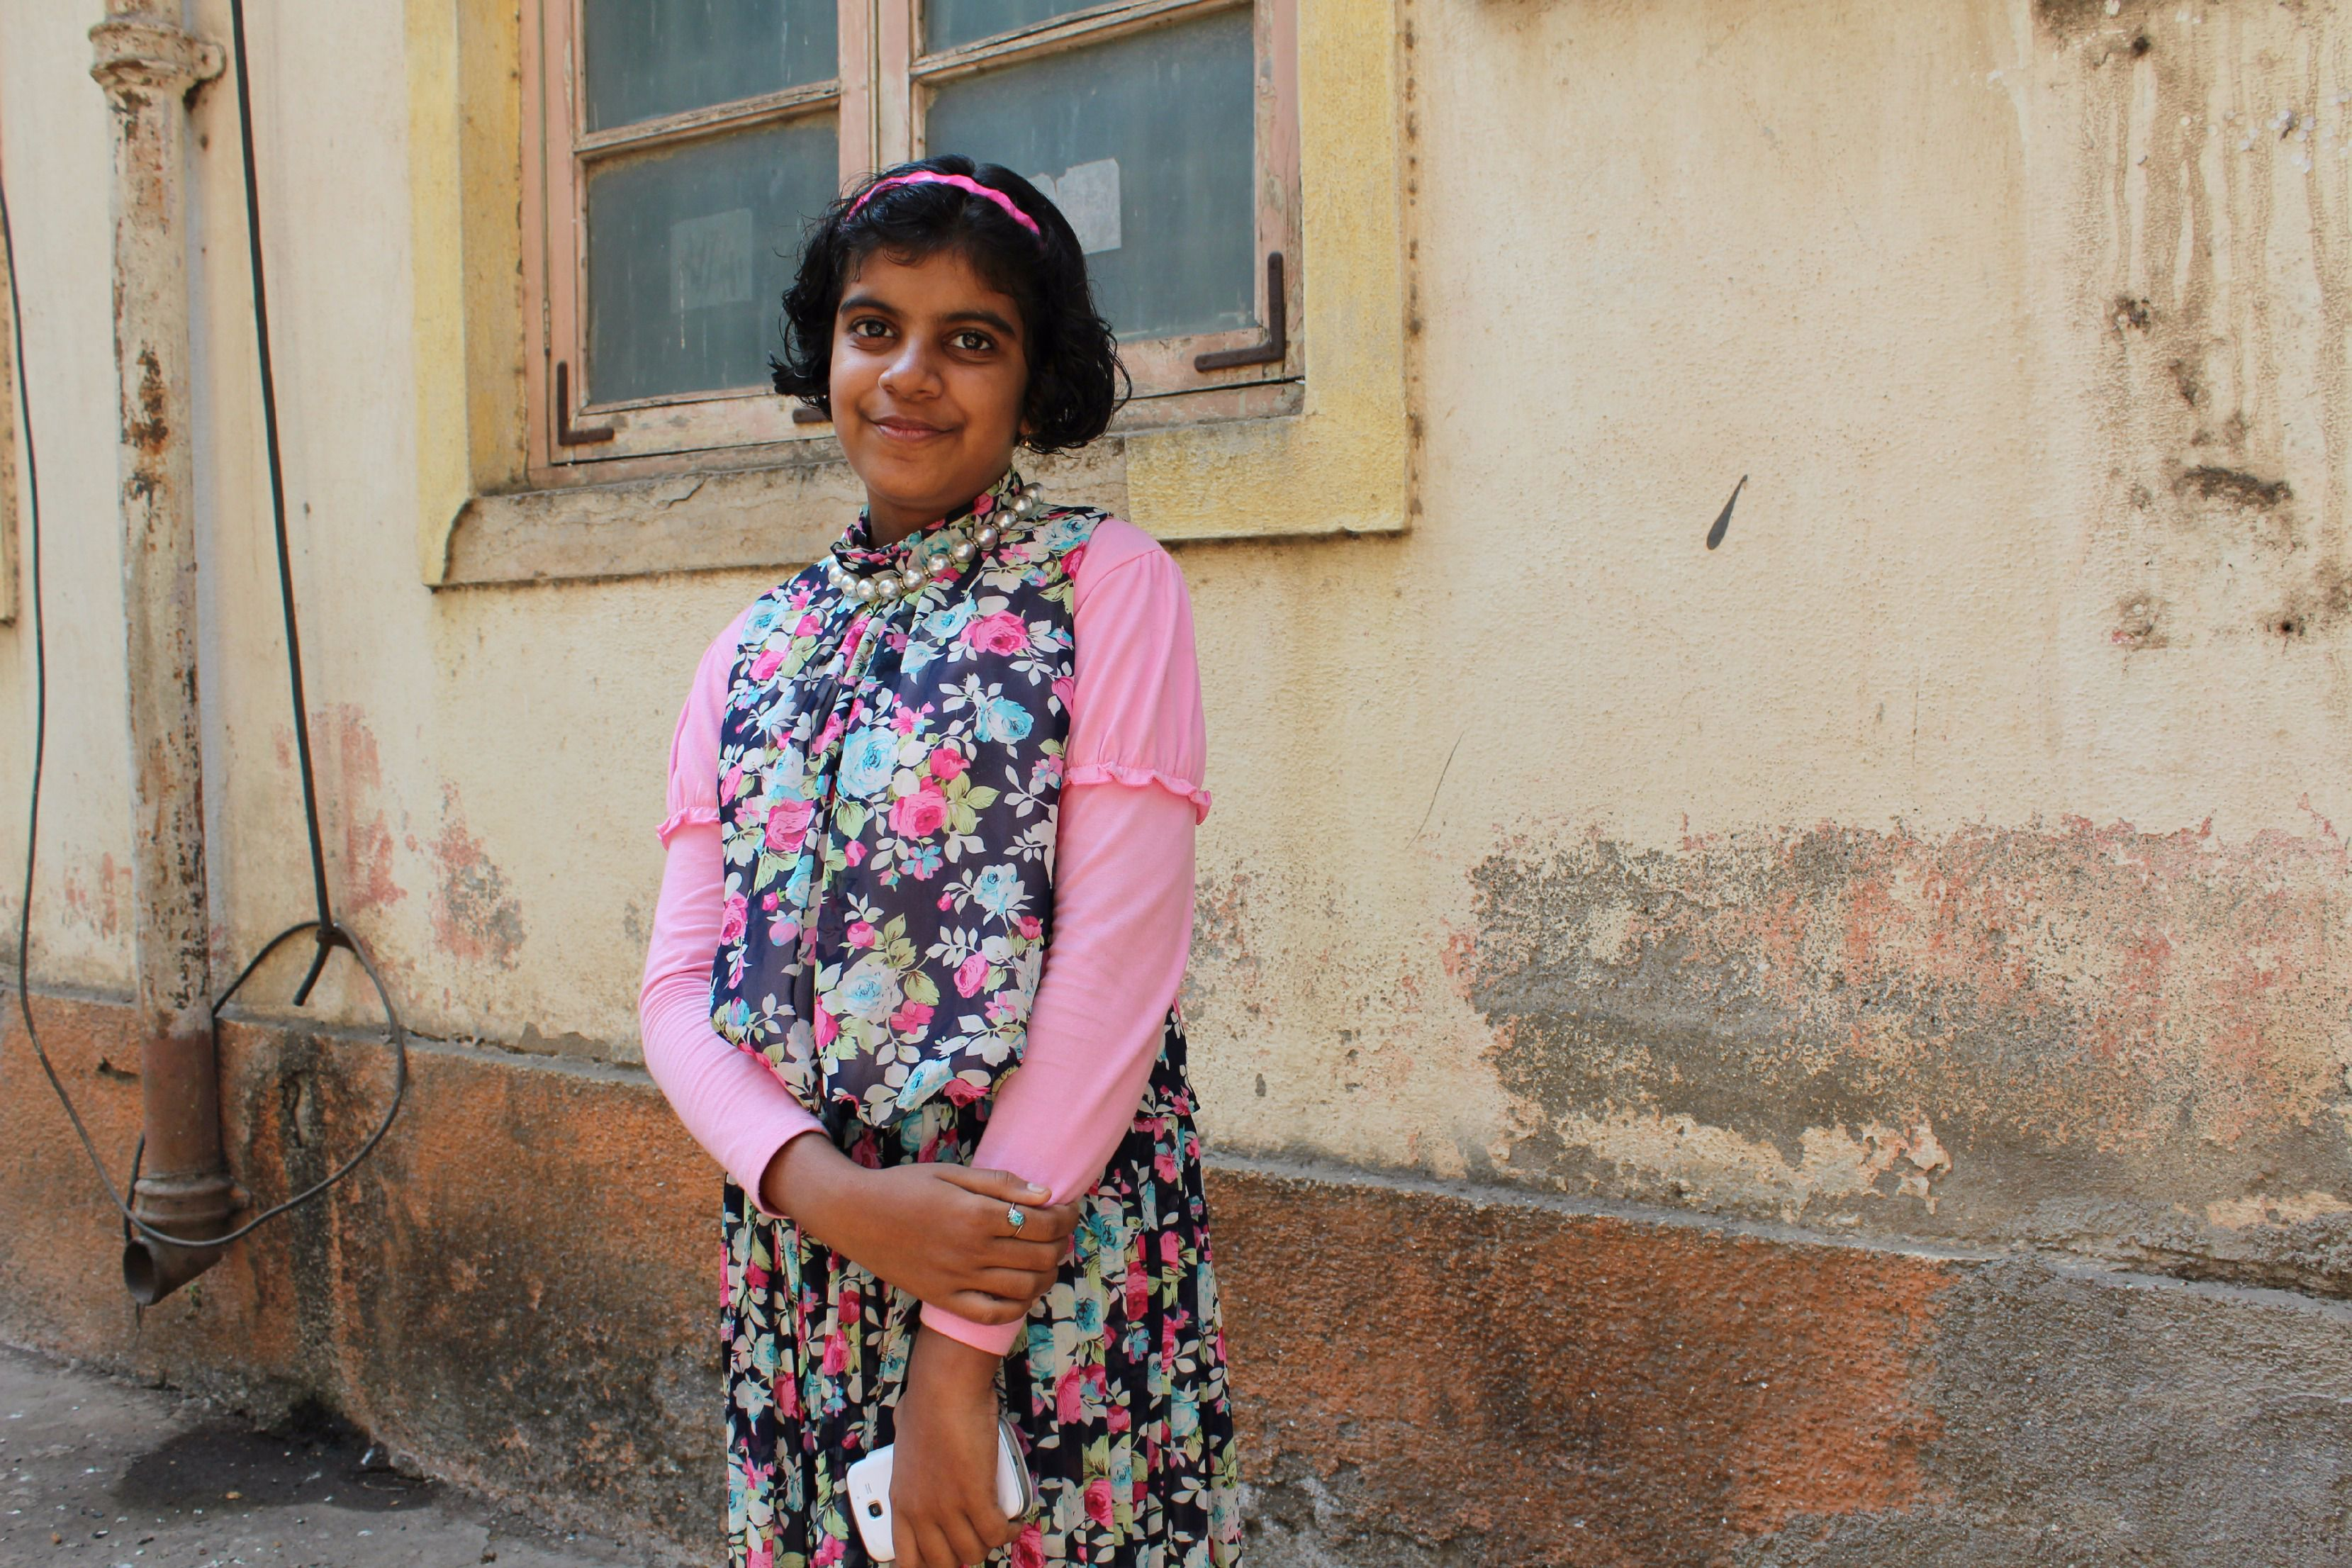 Vanishing Culture? Tiferet Galsurkar, 11, was the lone youth at the JCC's kirtan workshop.